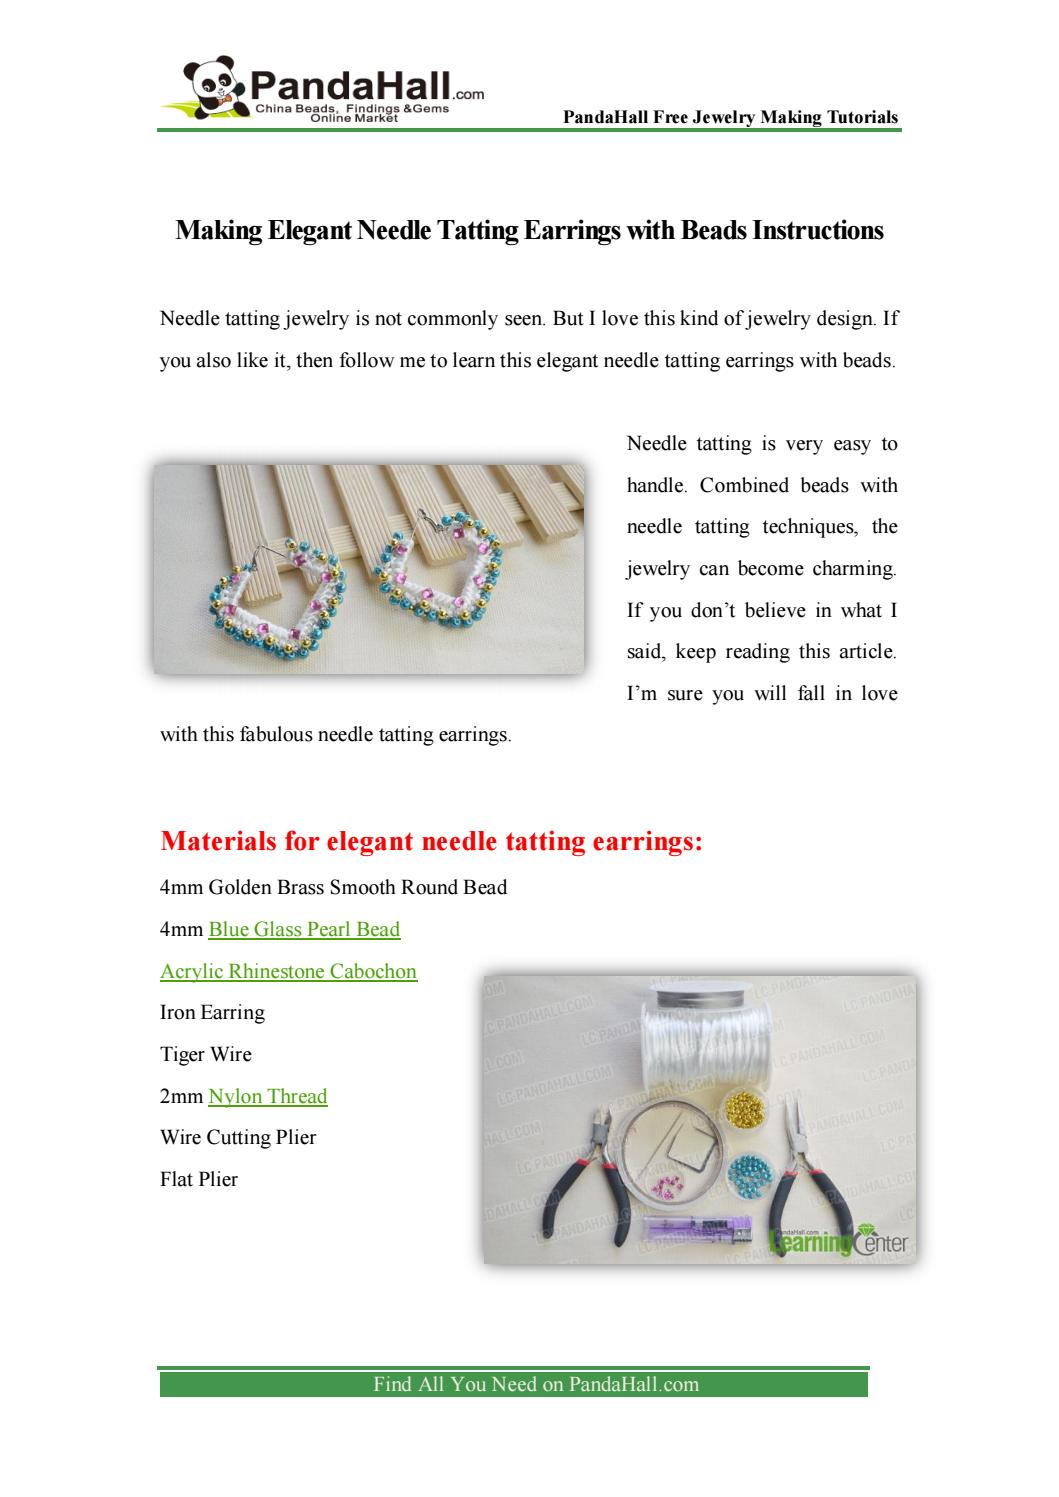 Making Elegant Needle Tatting Earrings With Beads Instructions By